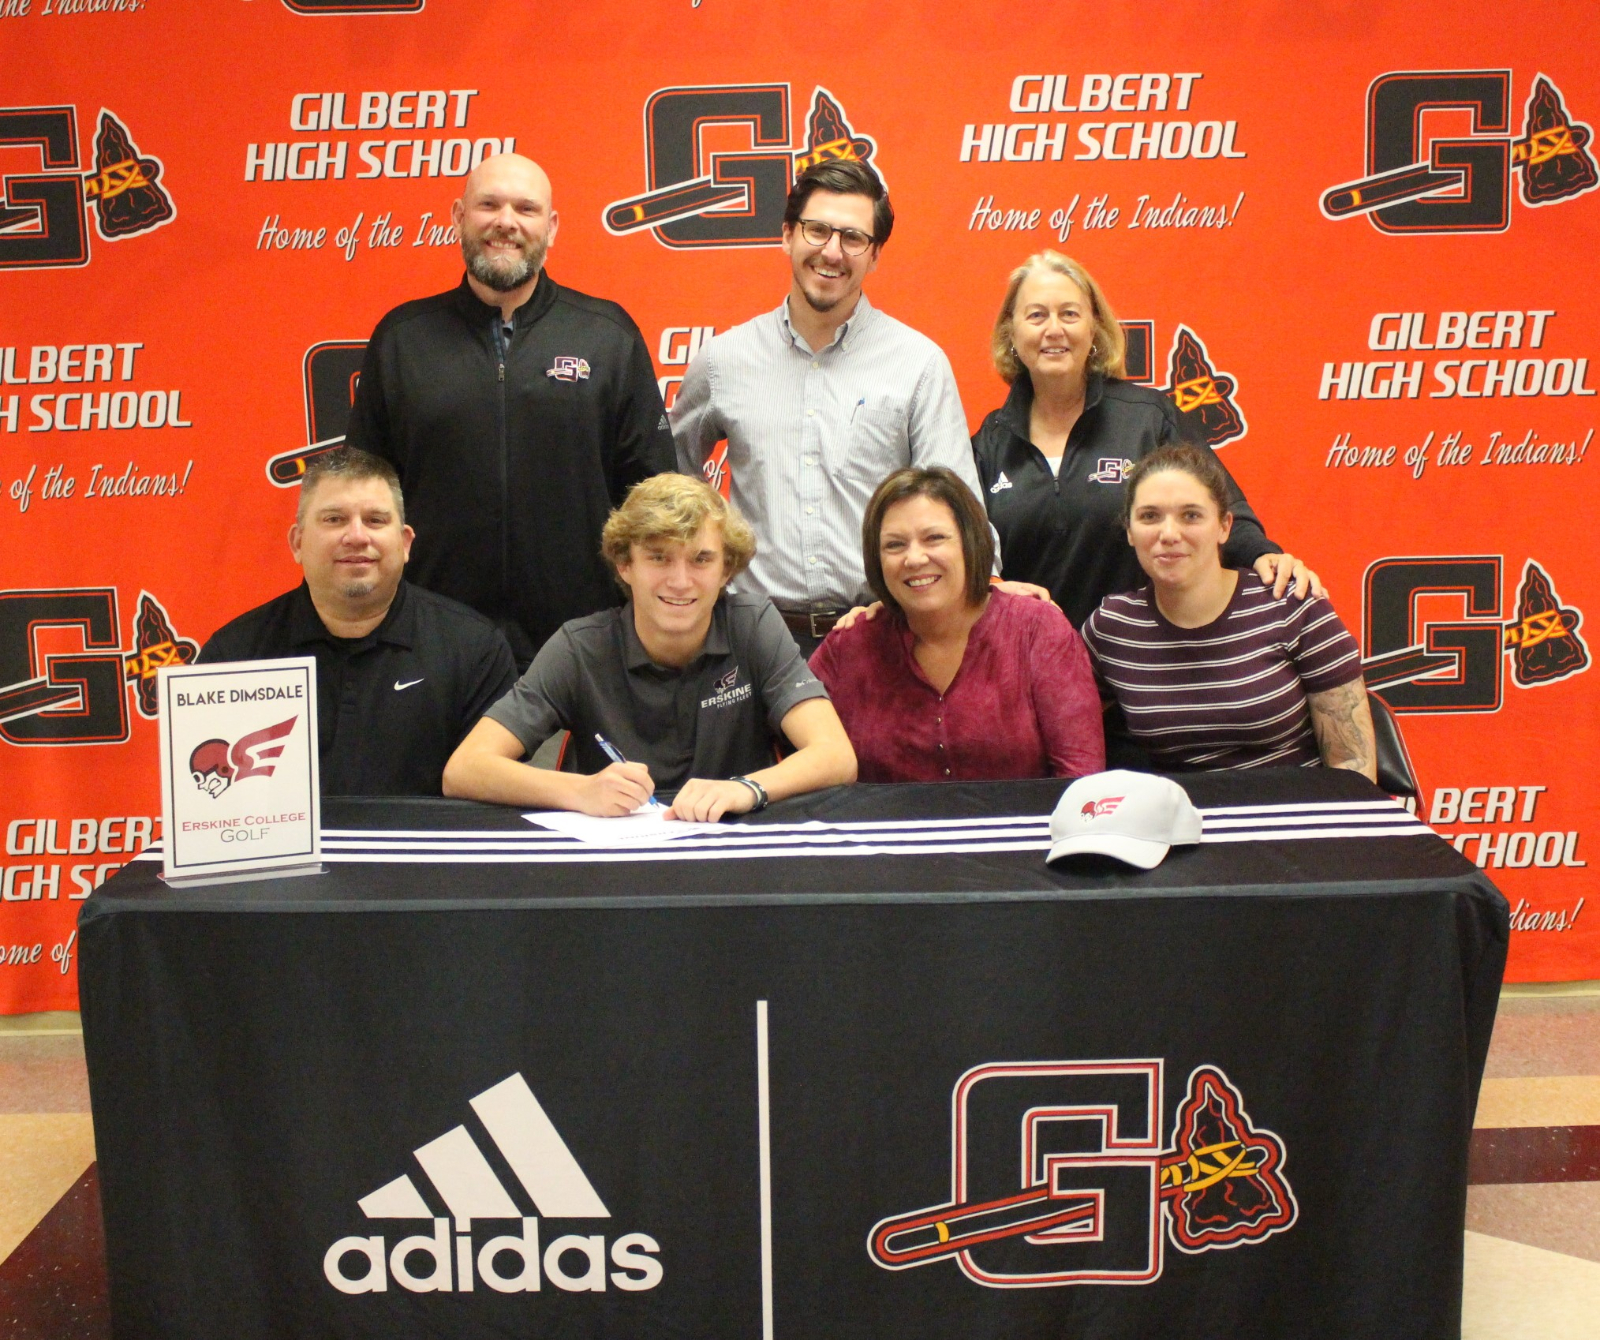 Congratulations to Blake Dimsdale